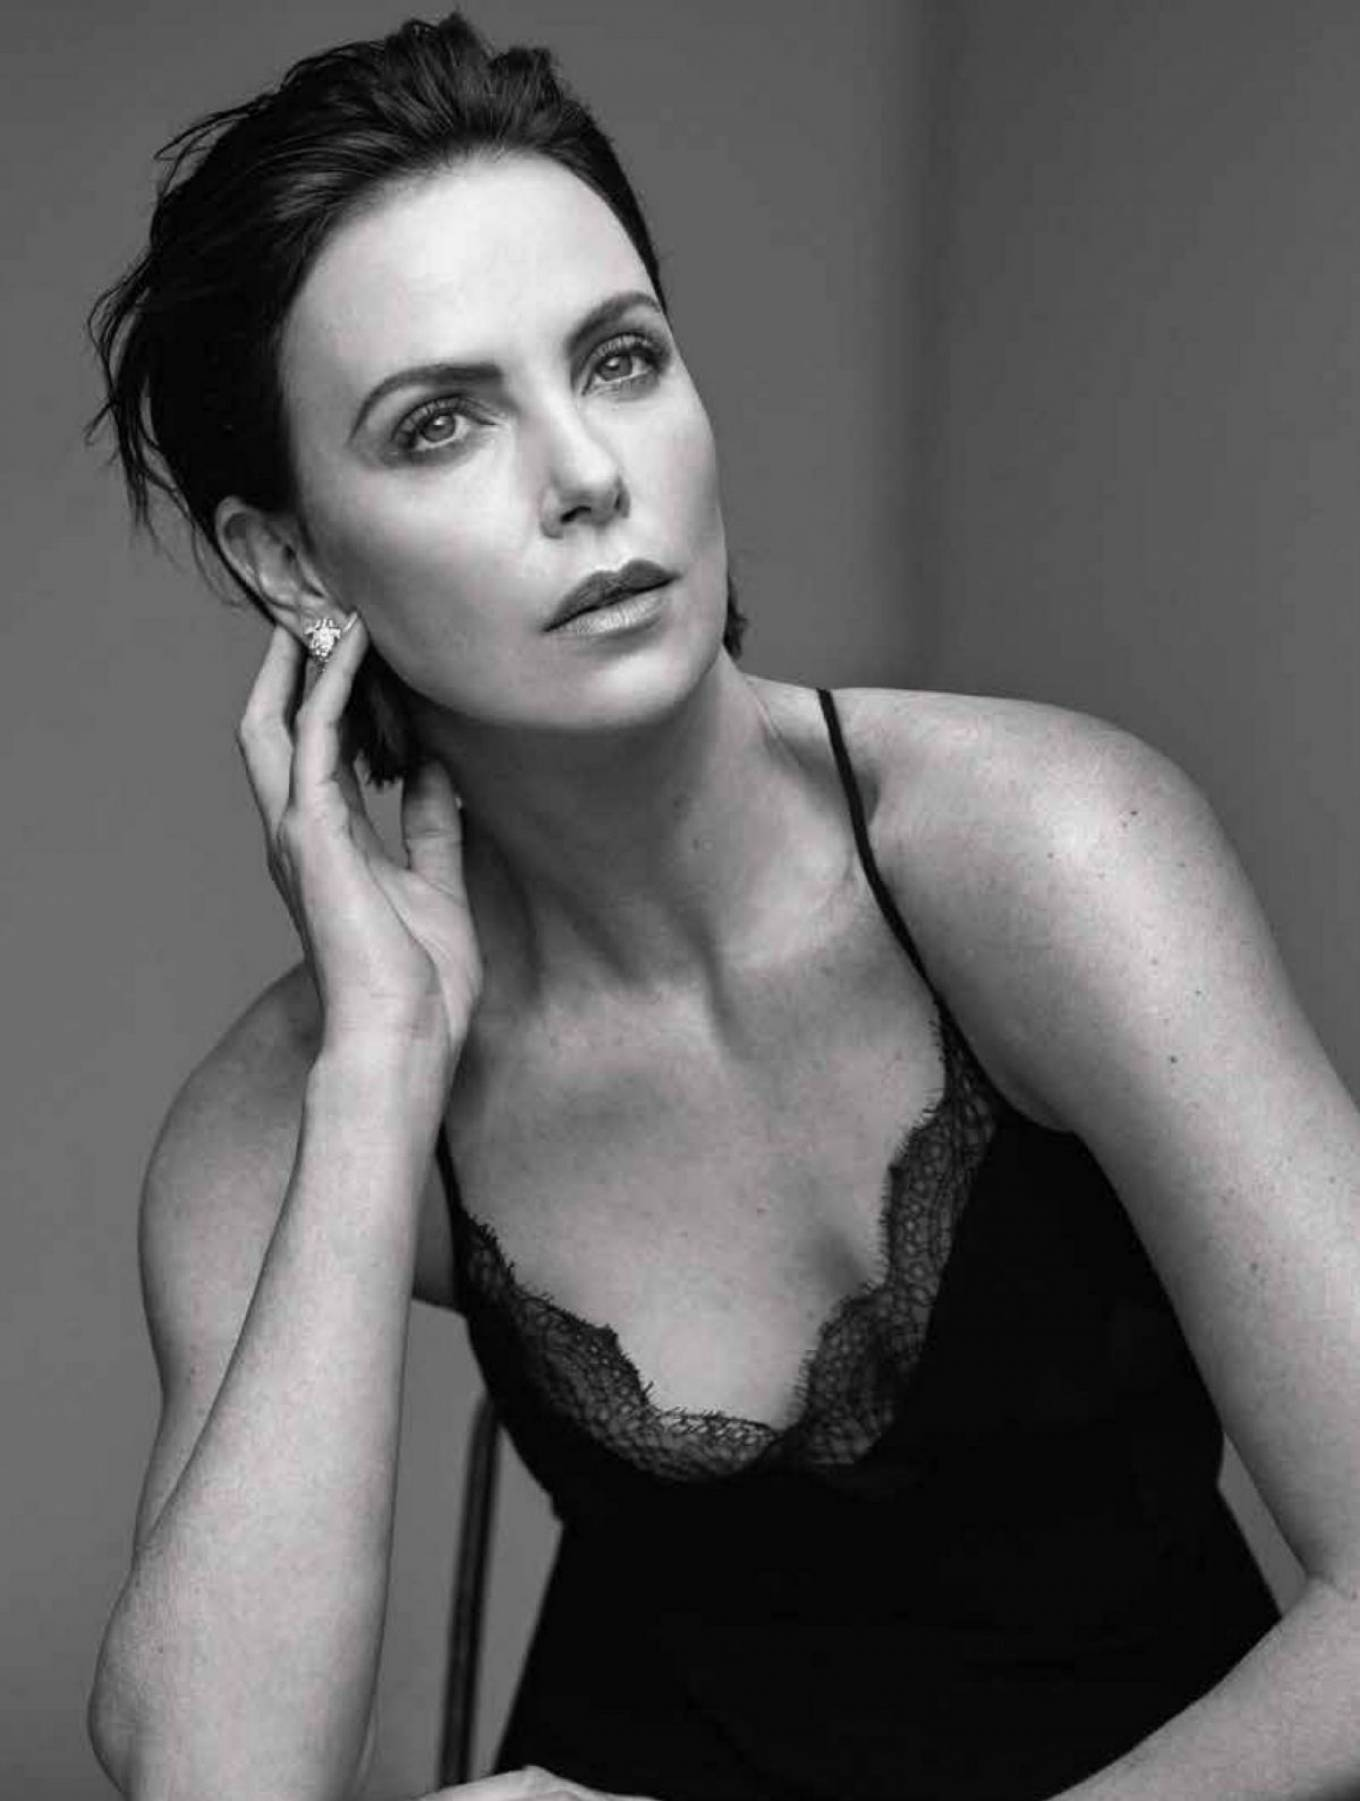 Charlize Theron 2020 : Charlize Theron – Gentlemens Watch Magazine (July 2020 issue)-06